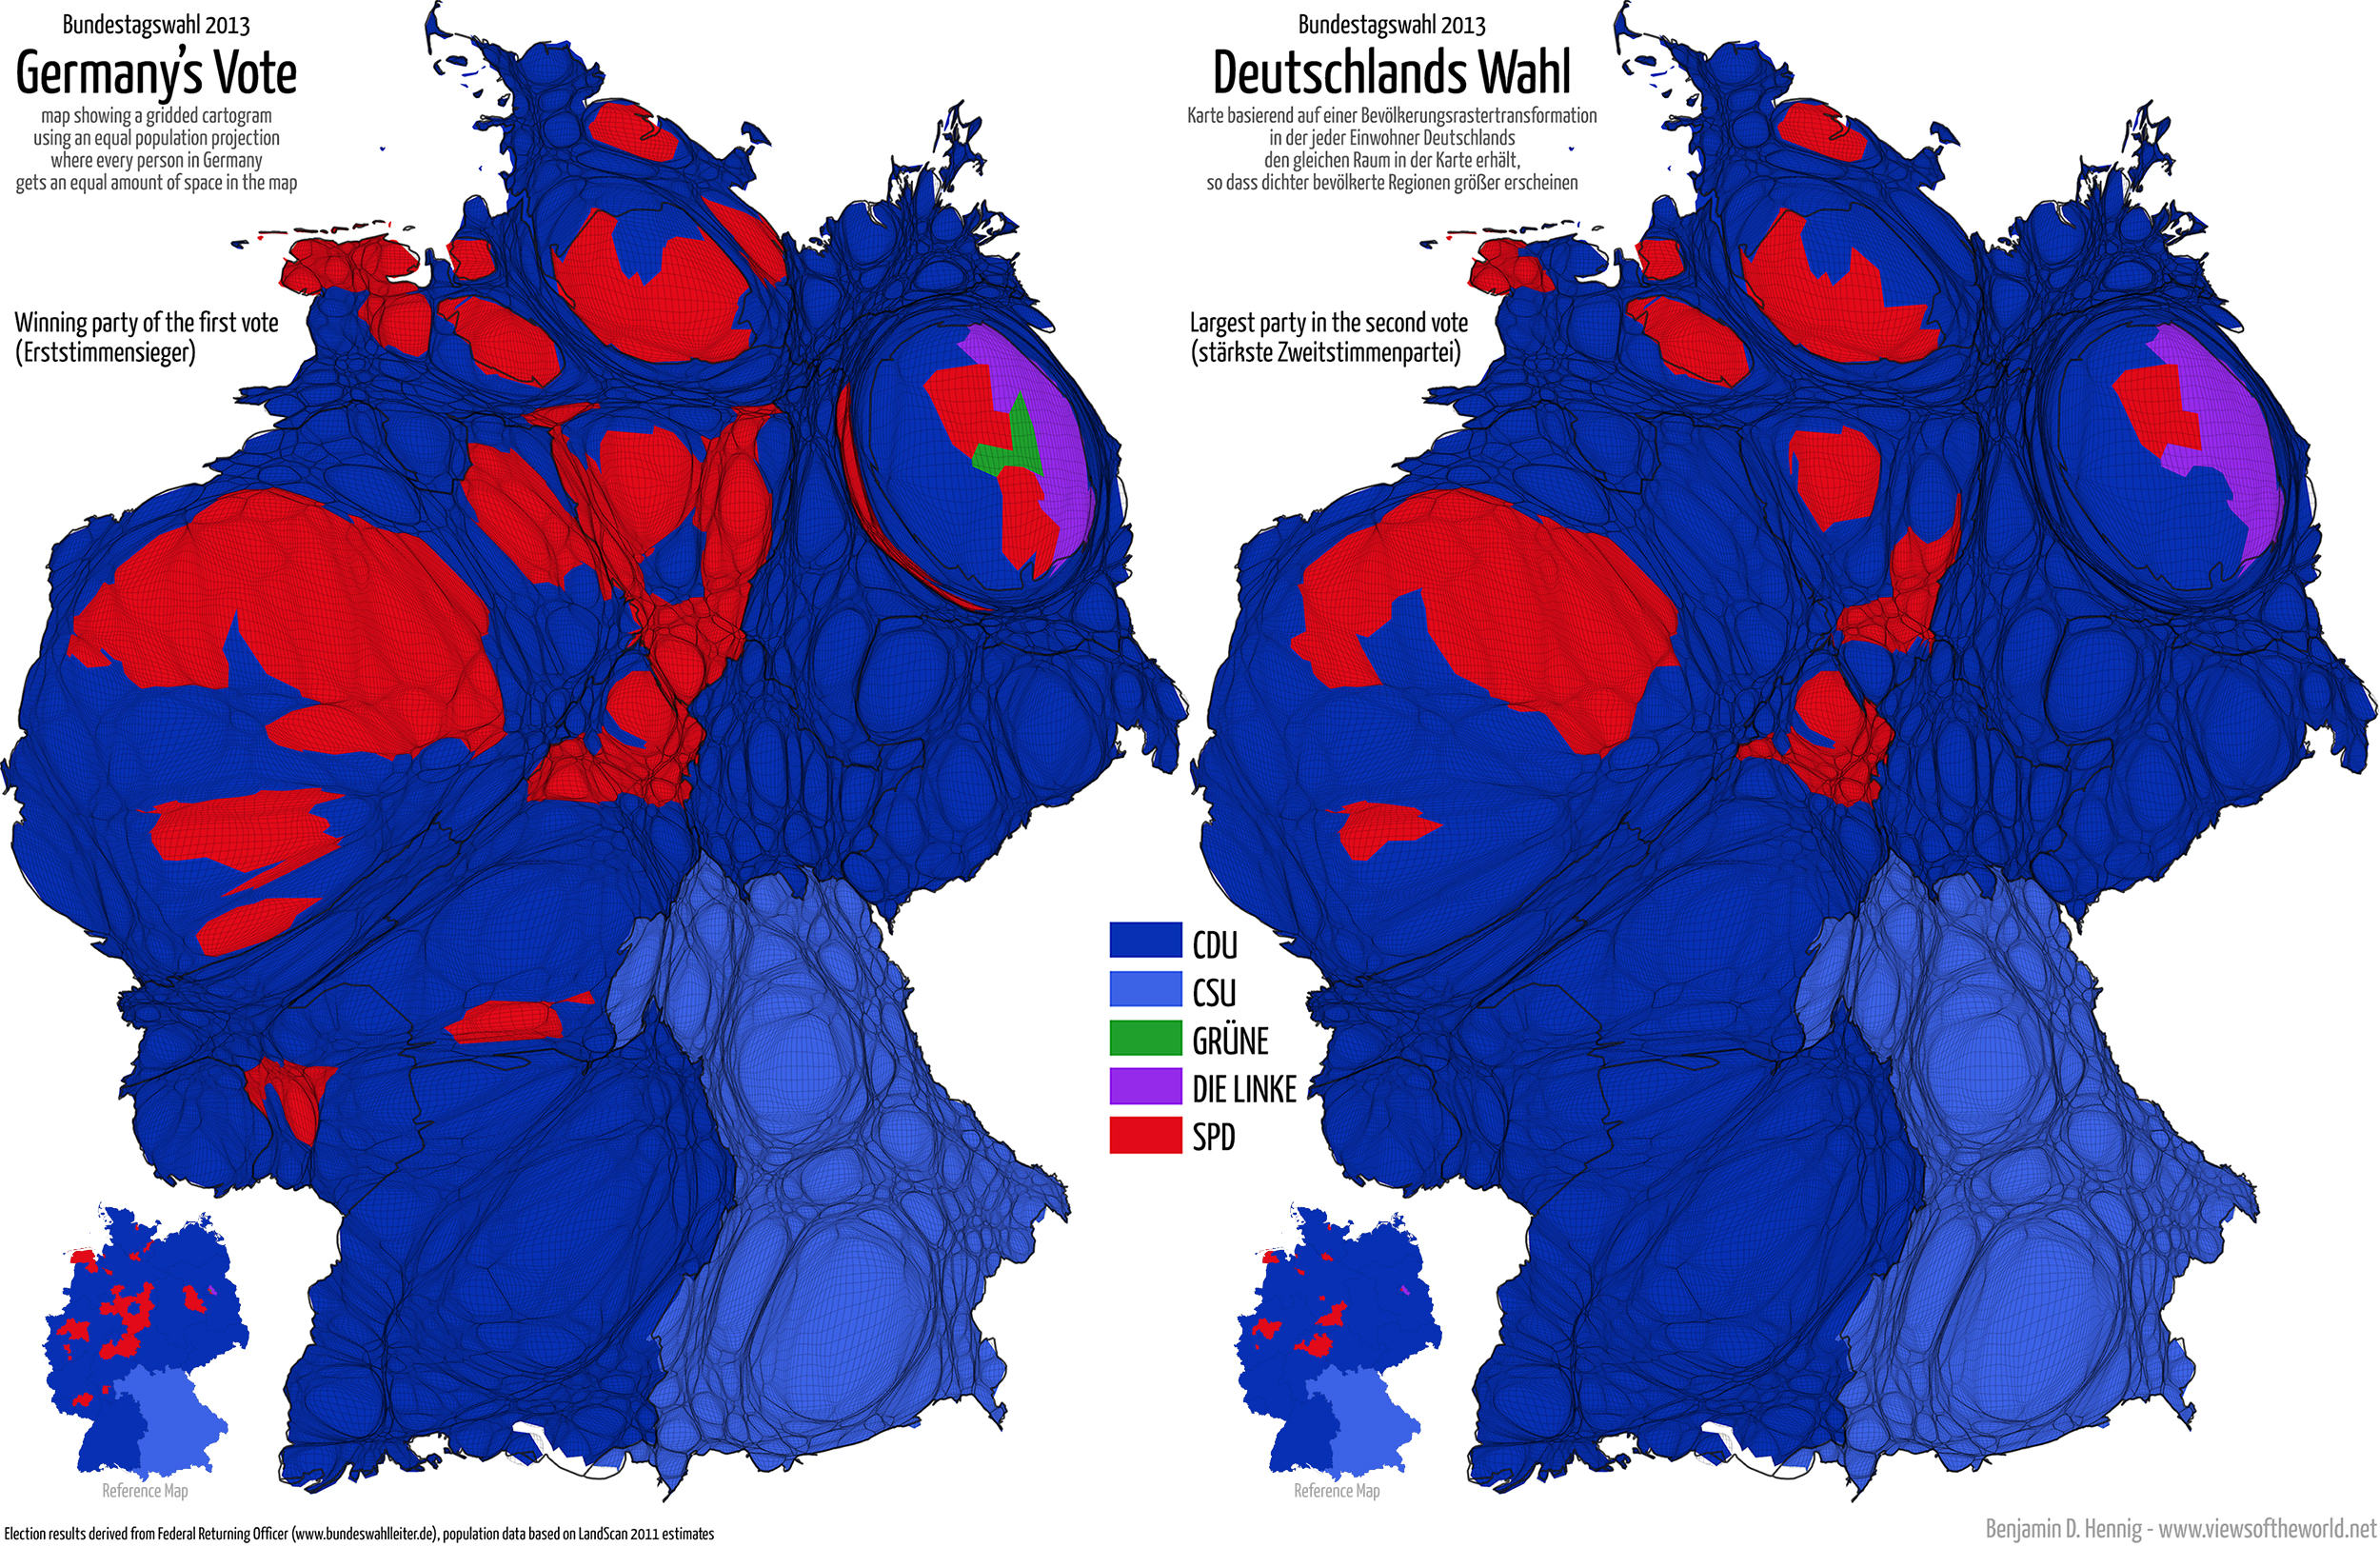 Bundestagswahl Electoral Maps Of Germany Views Of The World - 2016 us election results map regional